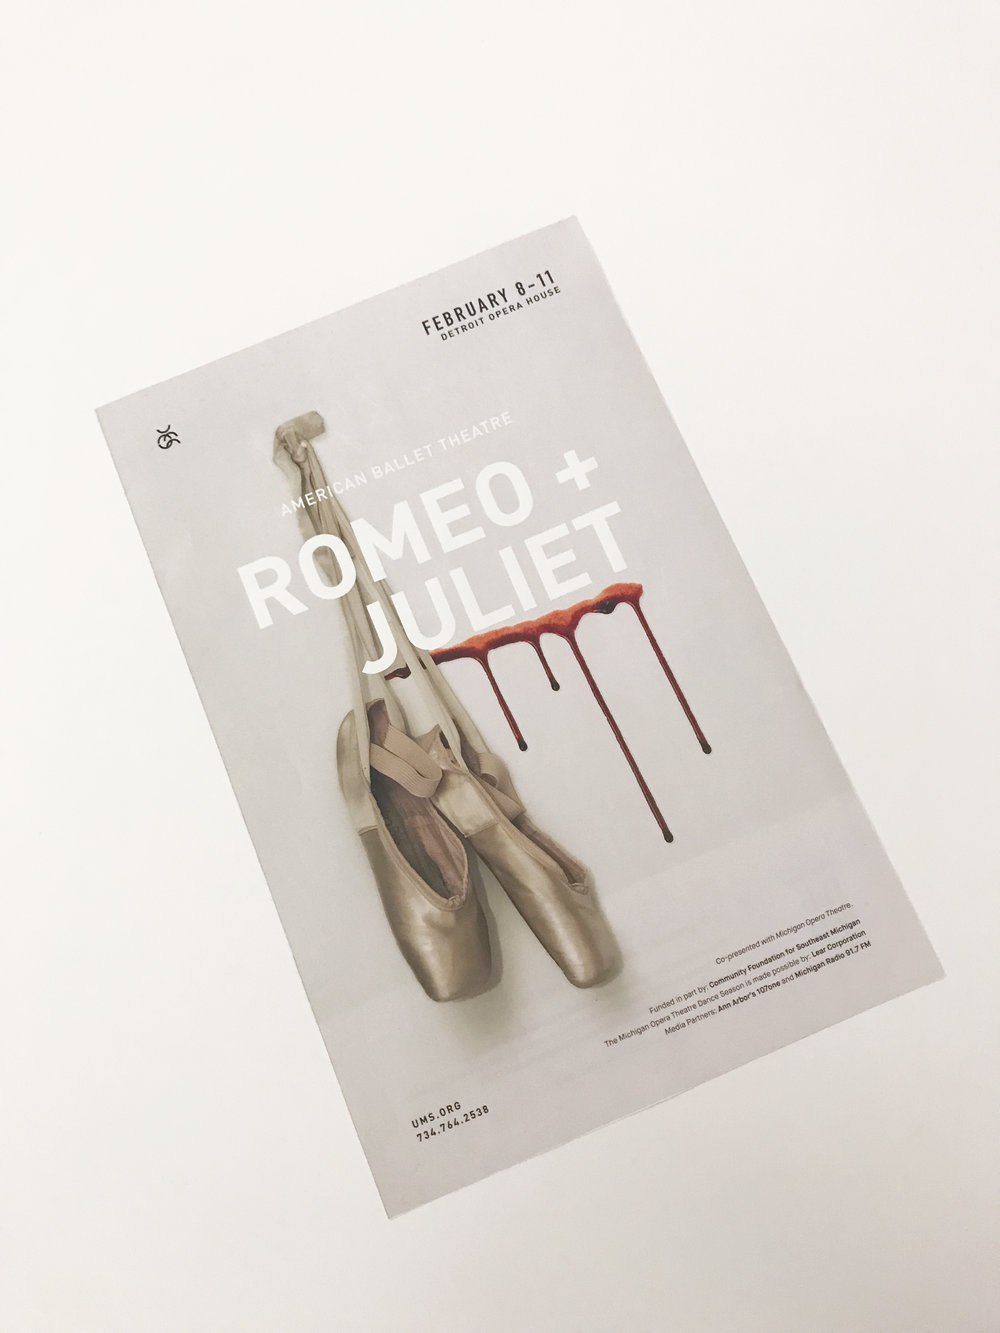 american-ballet-theater-romeo-and-juliet-poster.jpg